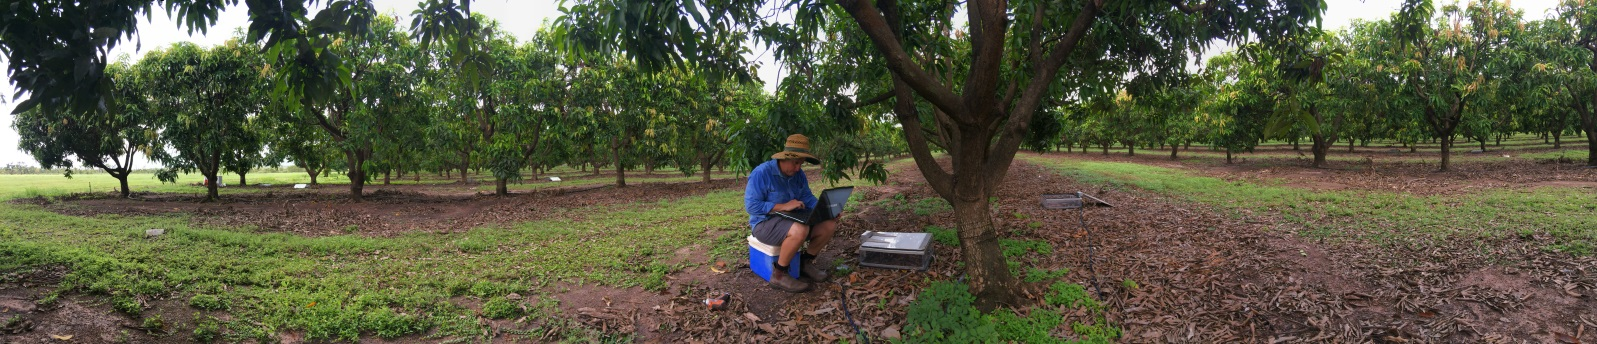 Panoramic view of Alan Niscioli programming semi-automatic soil gas sampling chambers at a Darwin mango orchard